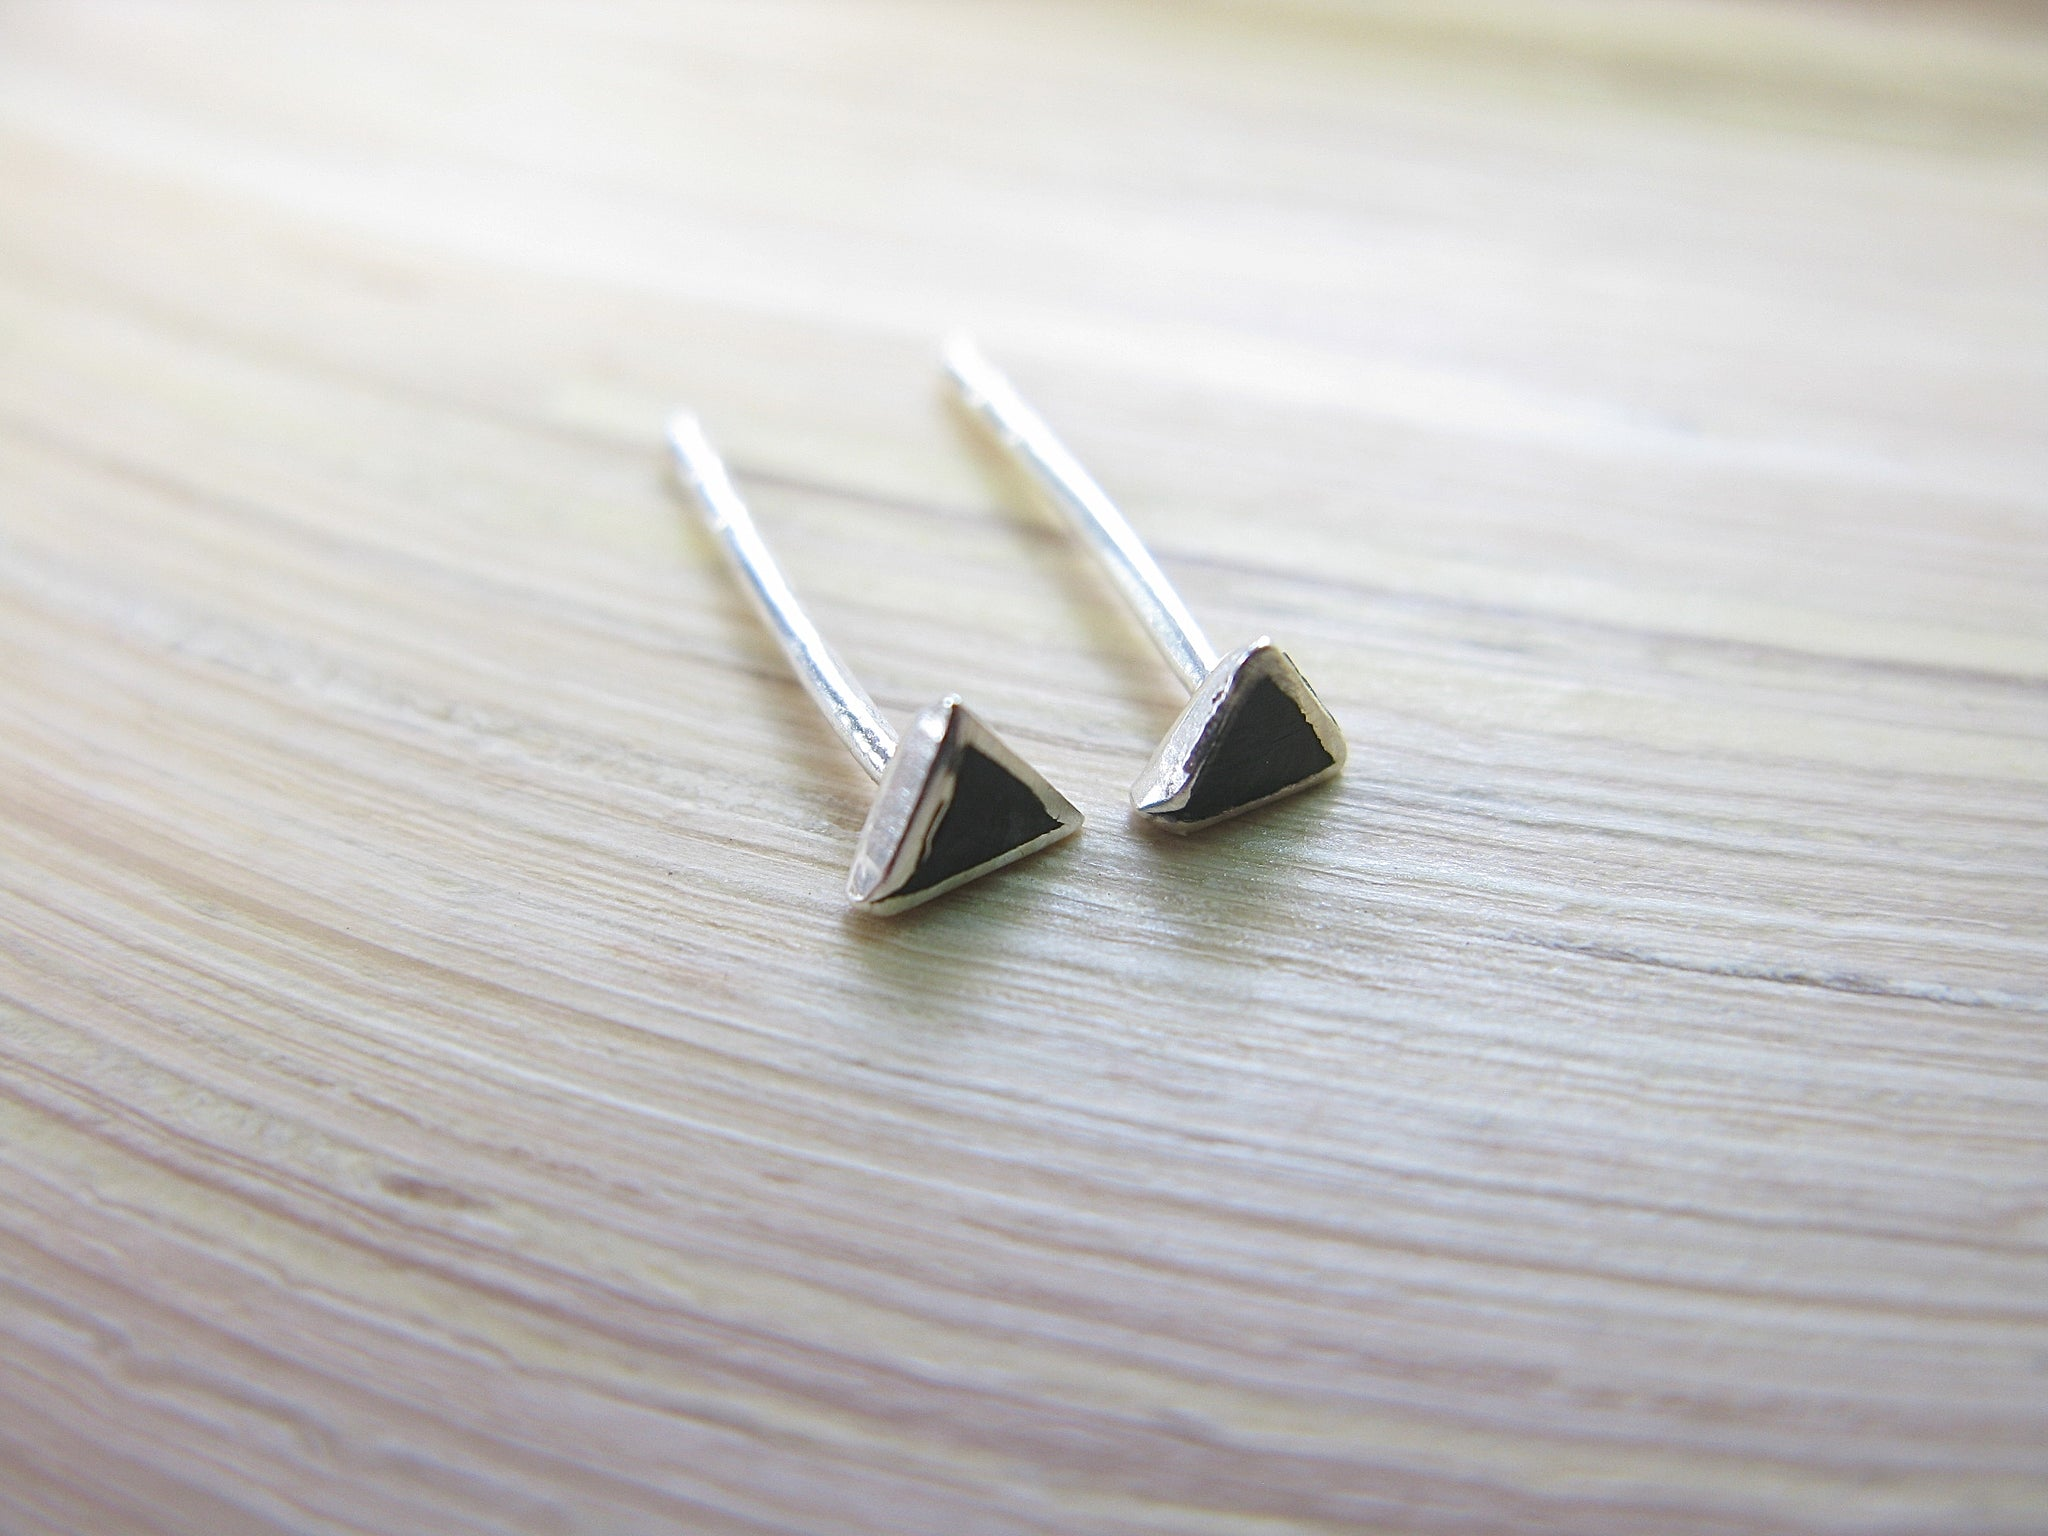 Onyx 3mm Tiny Triangle Stud Earrings in 925 Sterling Silver